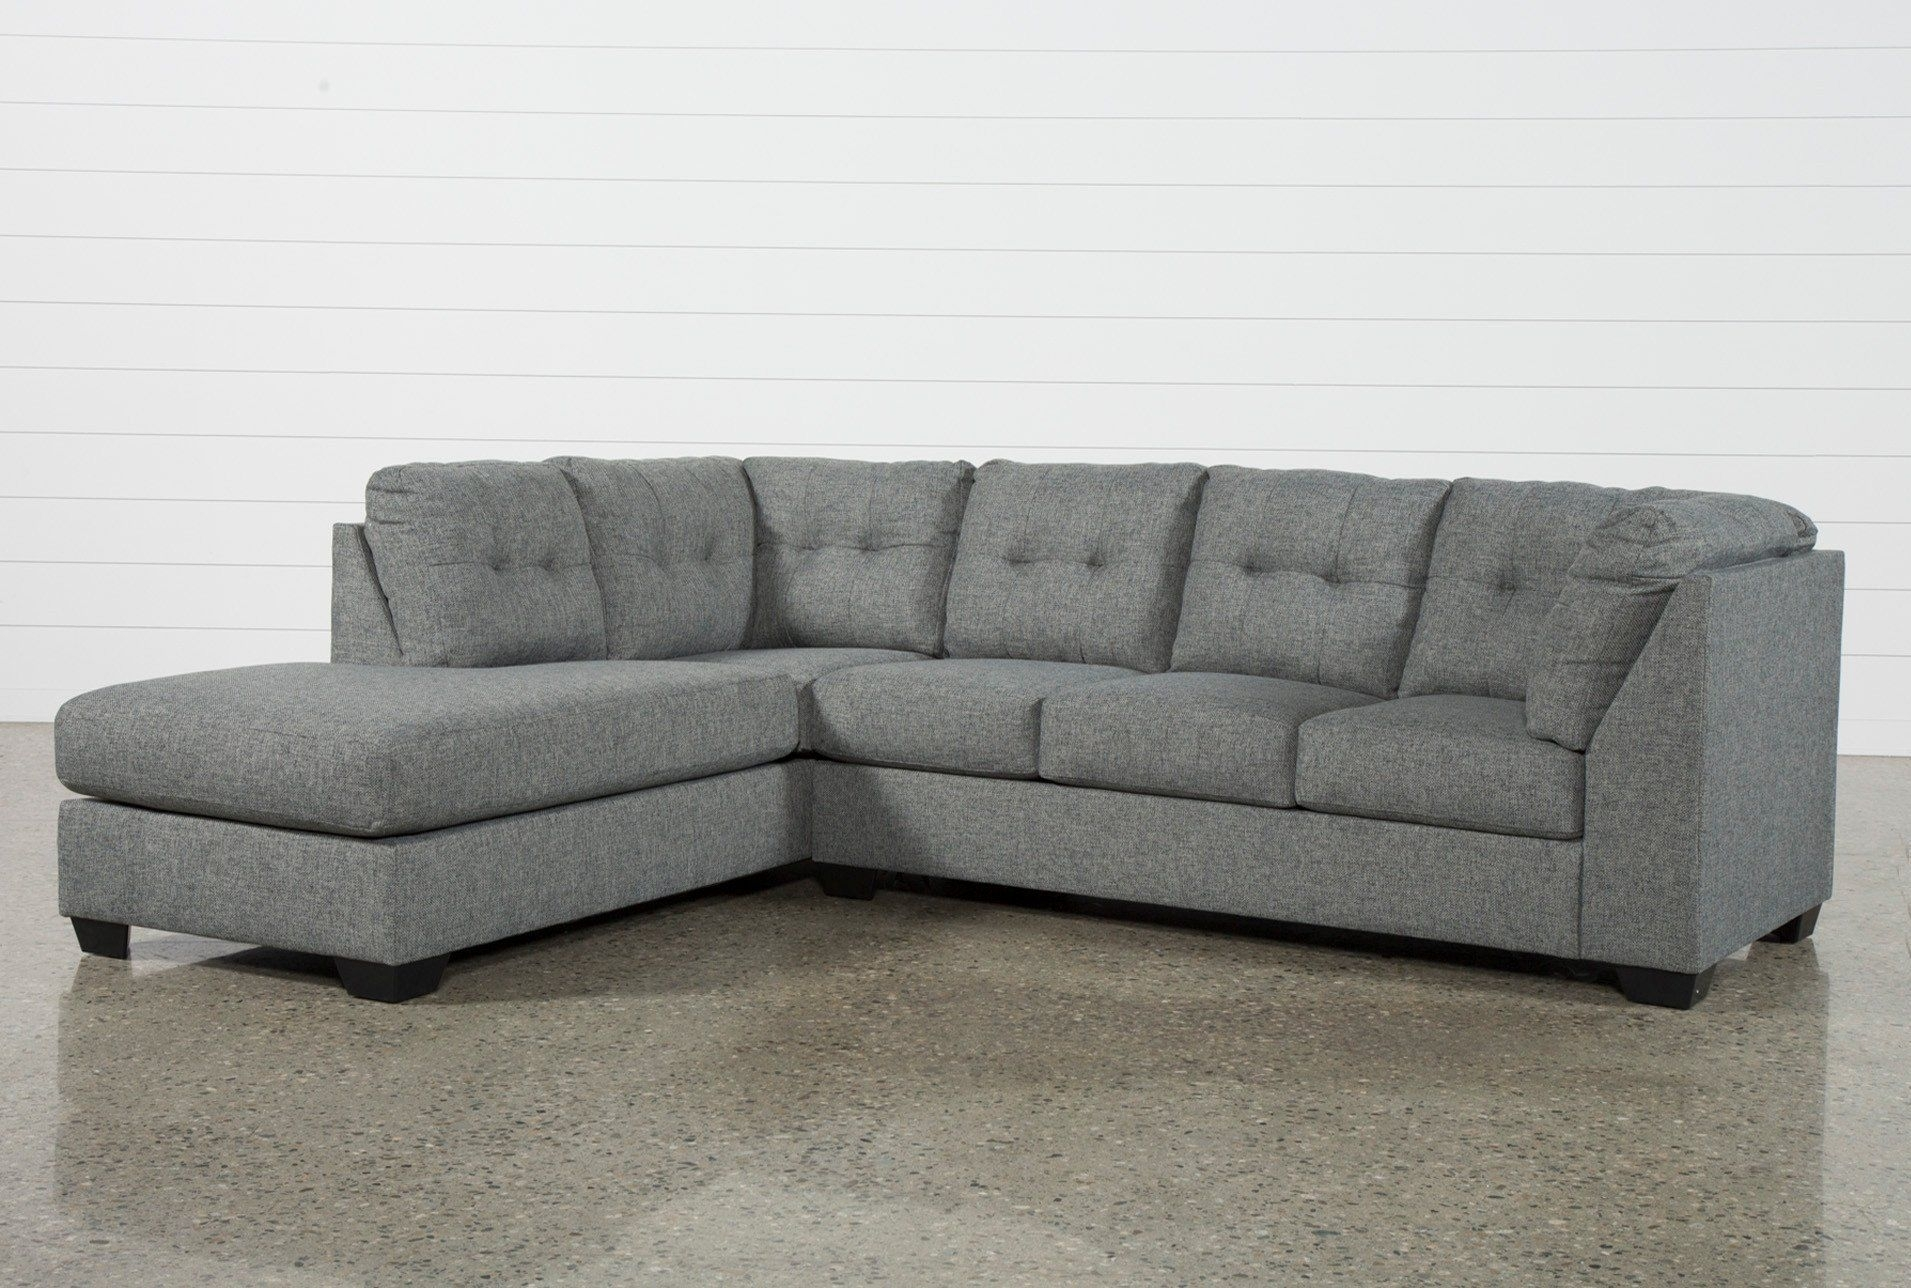 Cosmos Grey 2 Piece Sectional W/laf Chaise | Quilling | Pinterest With Regard To Cosmos Grey 2 Piece Sectionals With Laf Chaise (Image 9 of 25)